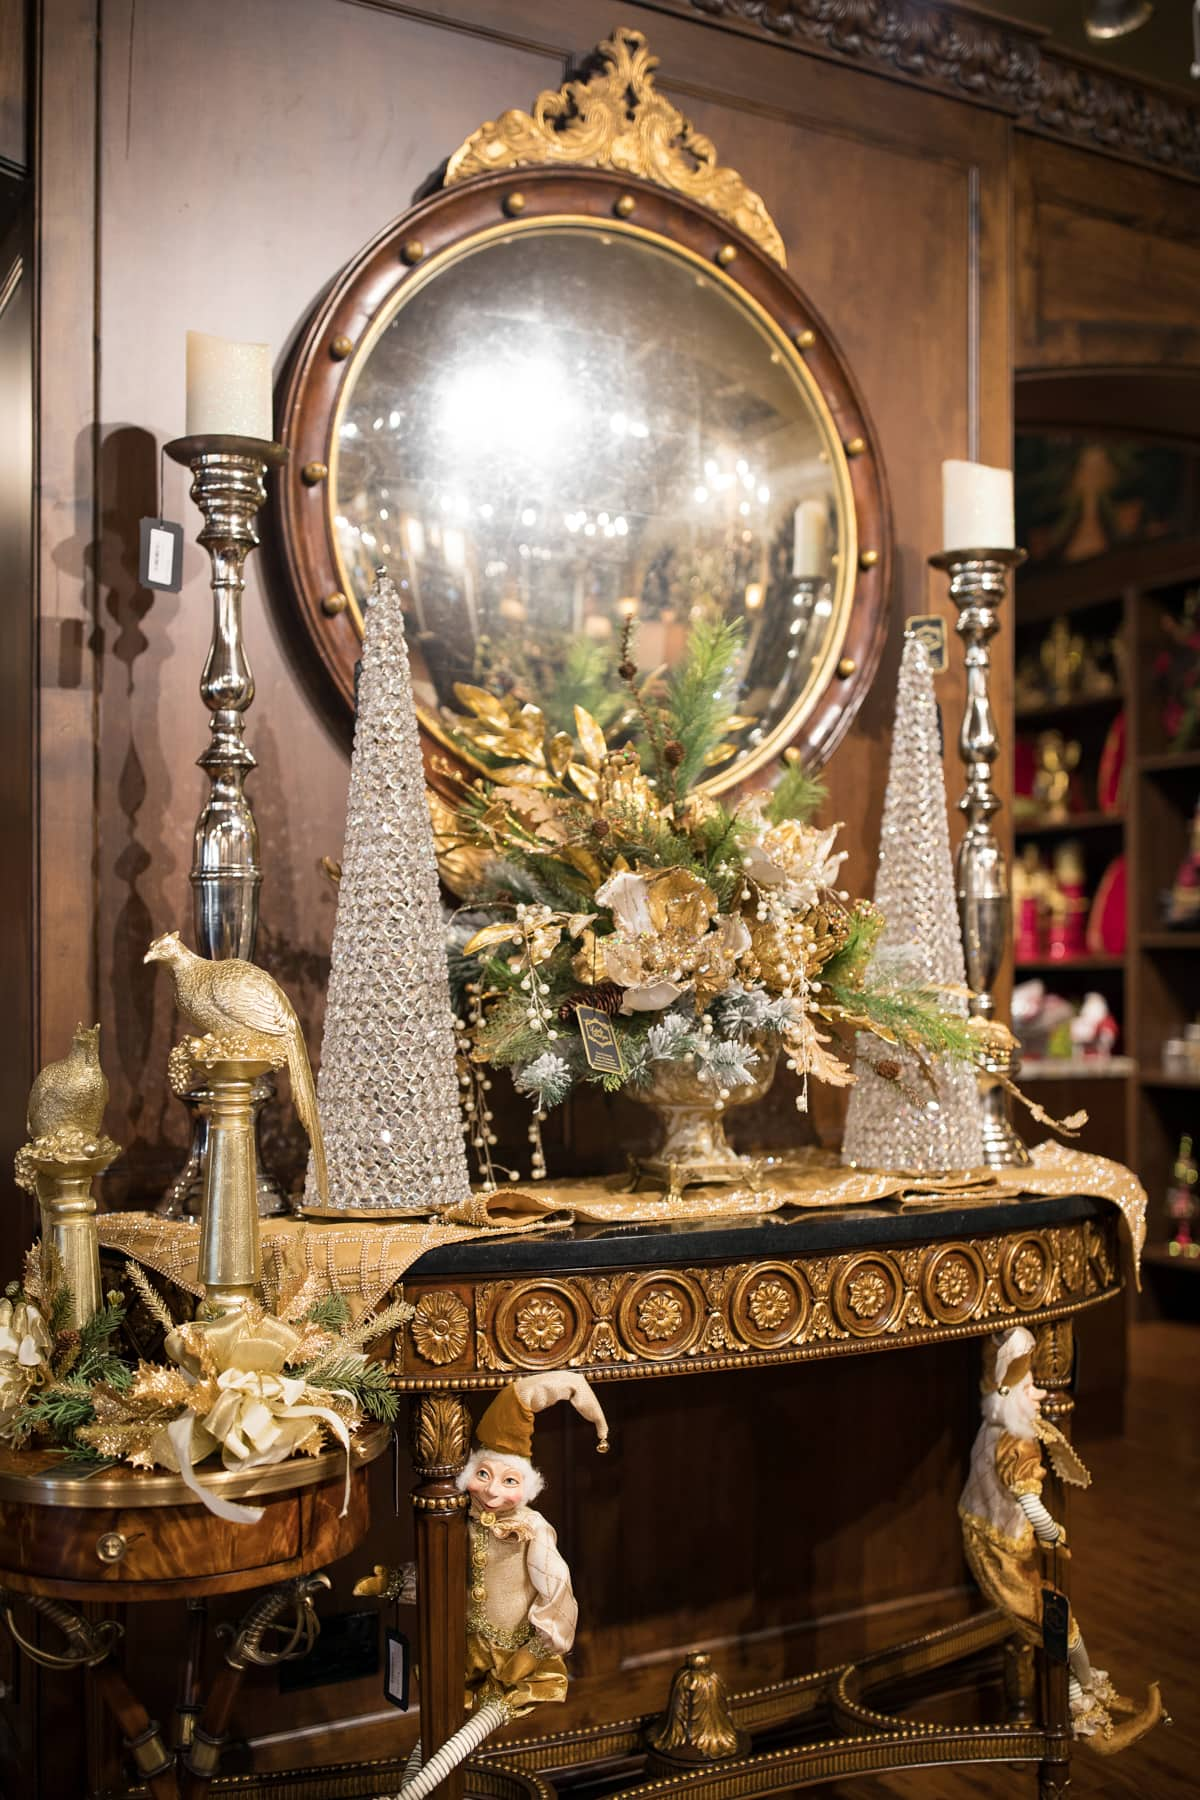 Luxury Christmas Home Decor: Linly-Designs-Luxury-Christmas-Decor-10